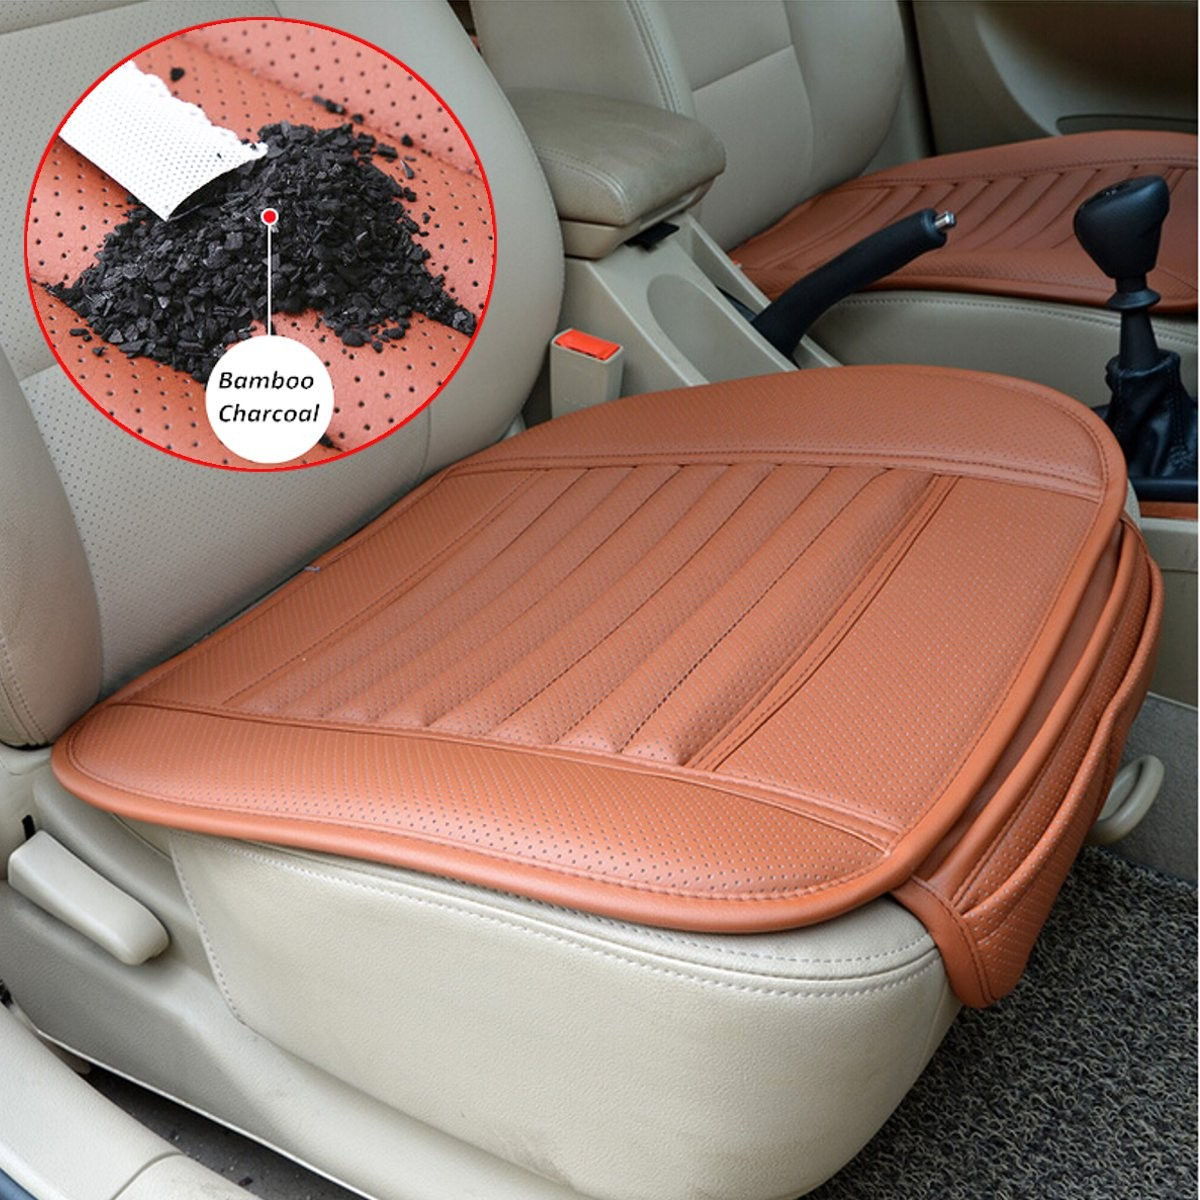 universal pu leather seat seatpad cover decor for auto car office chairs grey colour online. Black Bedroom Furniture Sets. Home Design Ideas